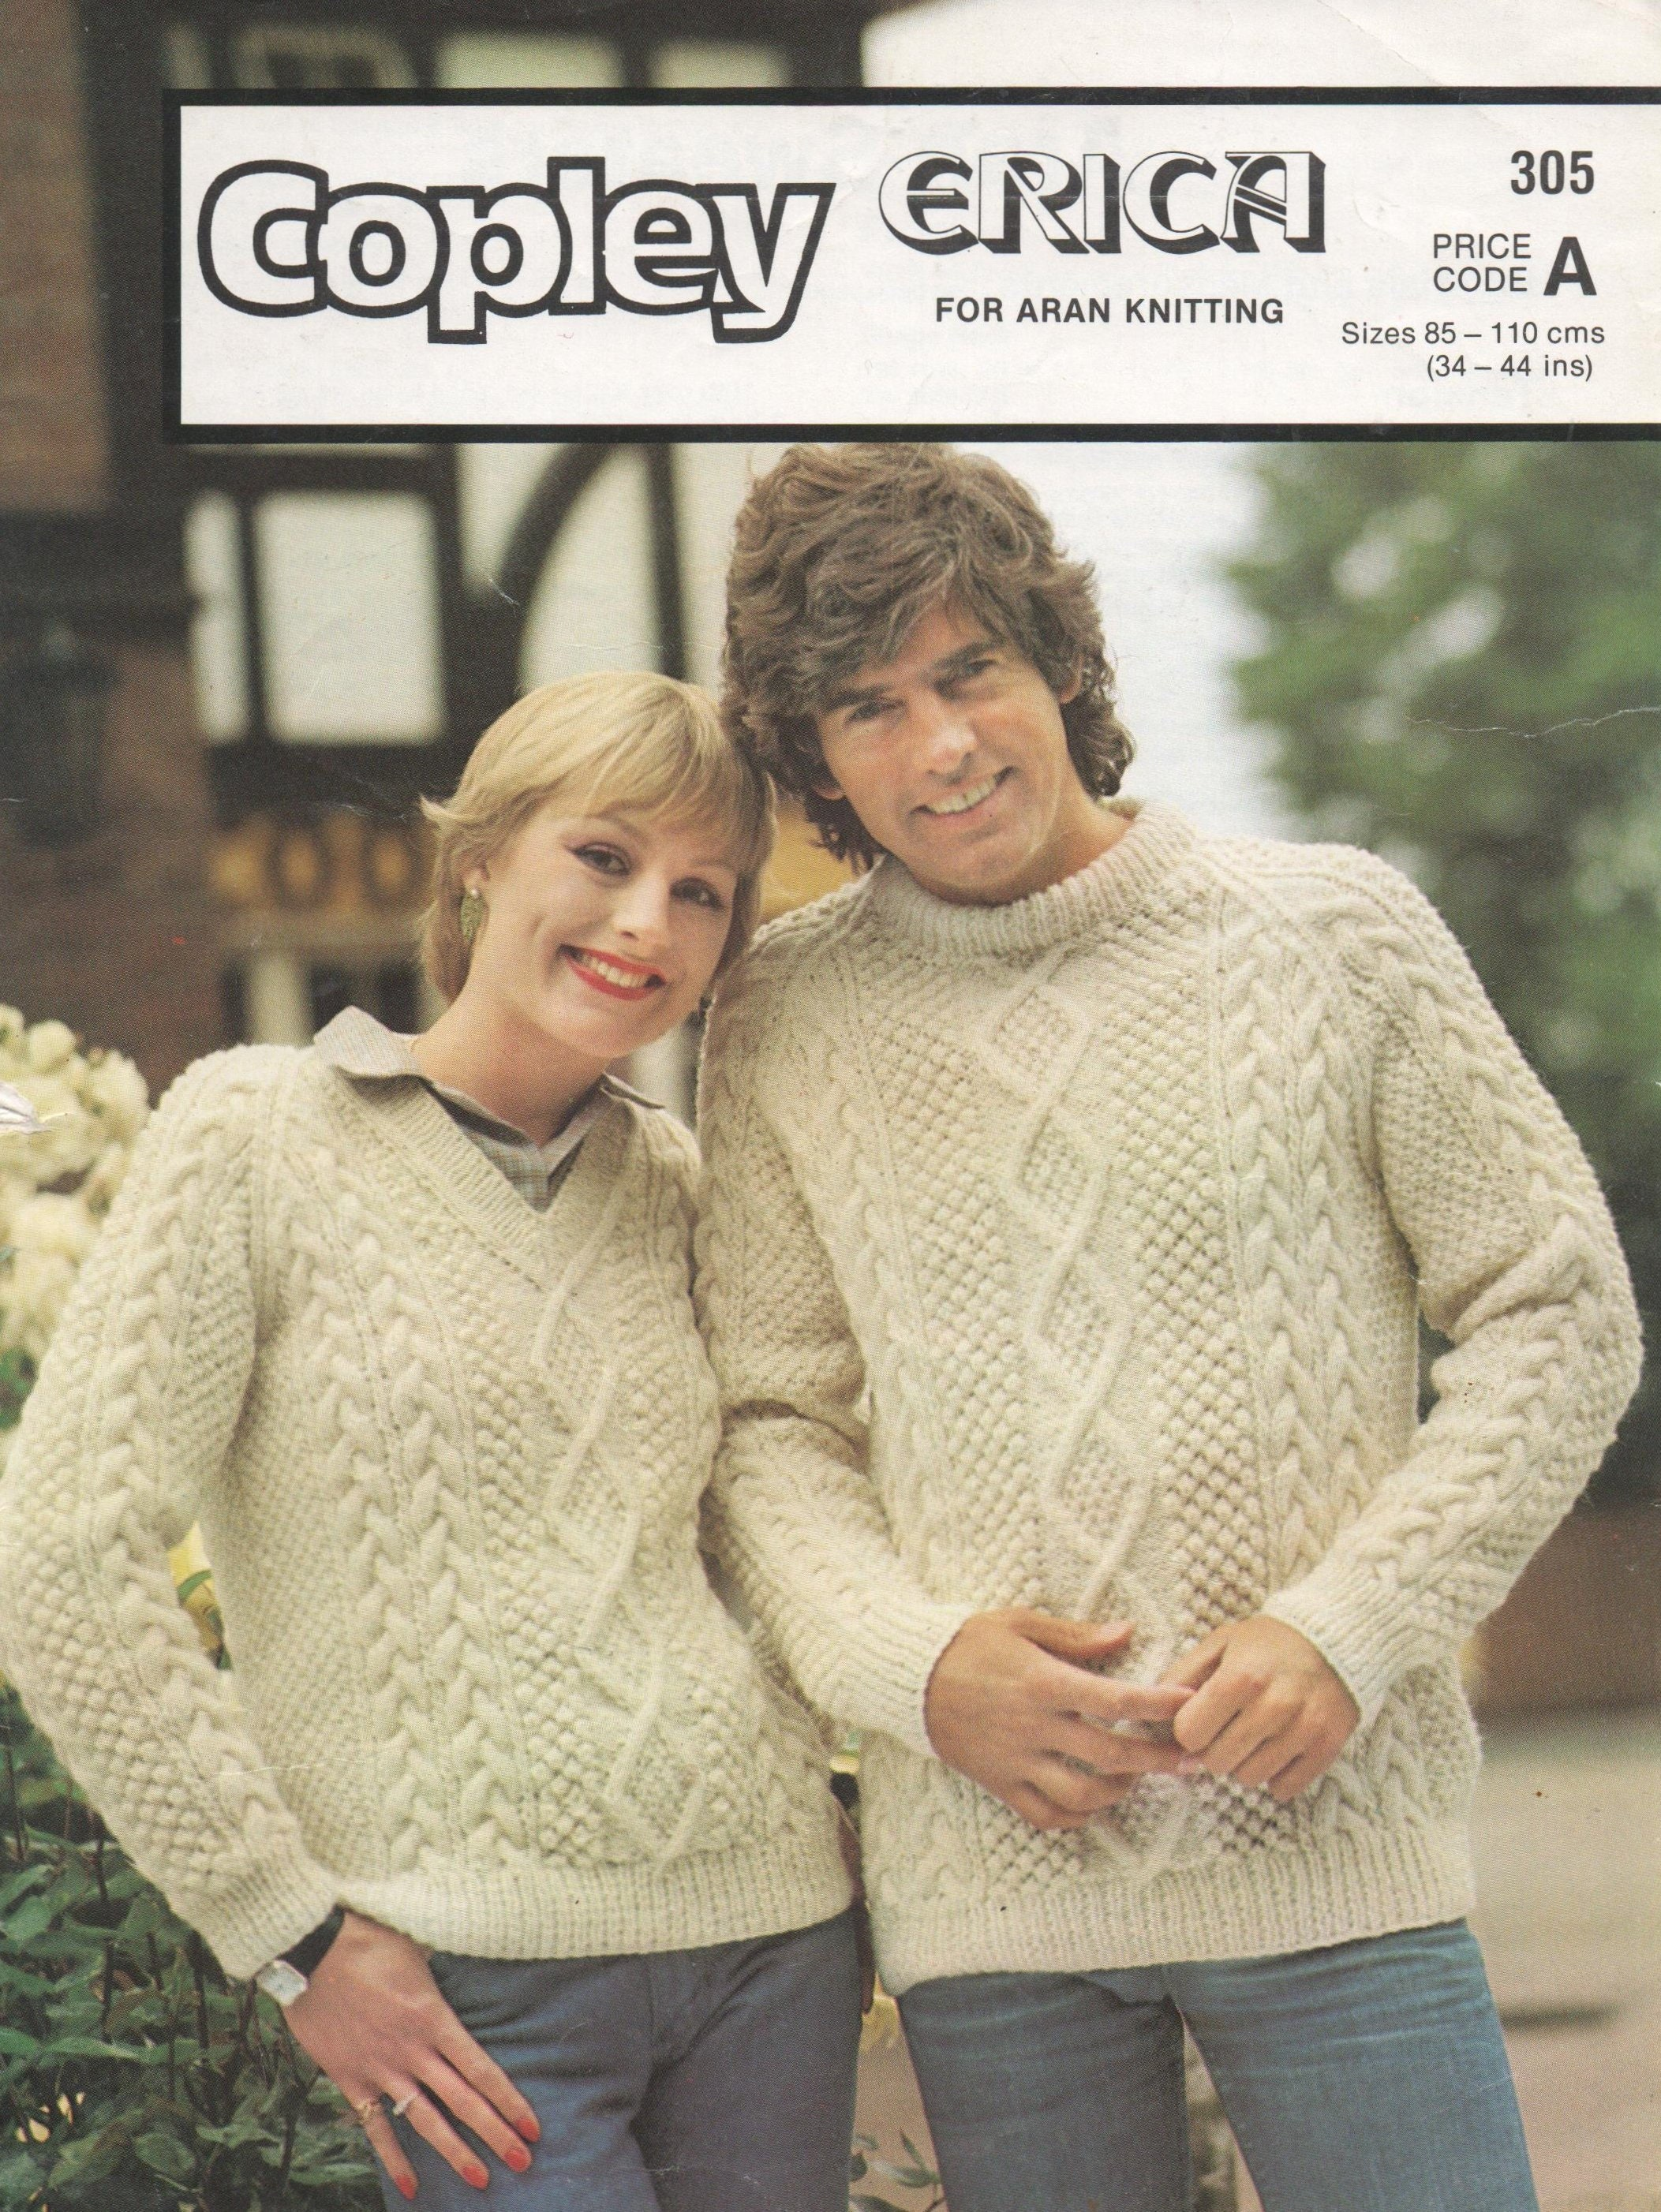 bc2385759351 Instant Digital Download PDF Vintage Row by Row Knitting Pattern to make A  Man s Woman s Aran Cable Sweater Jumper Pullover Chest 34-44